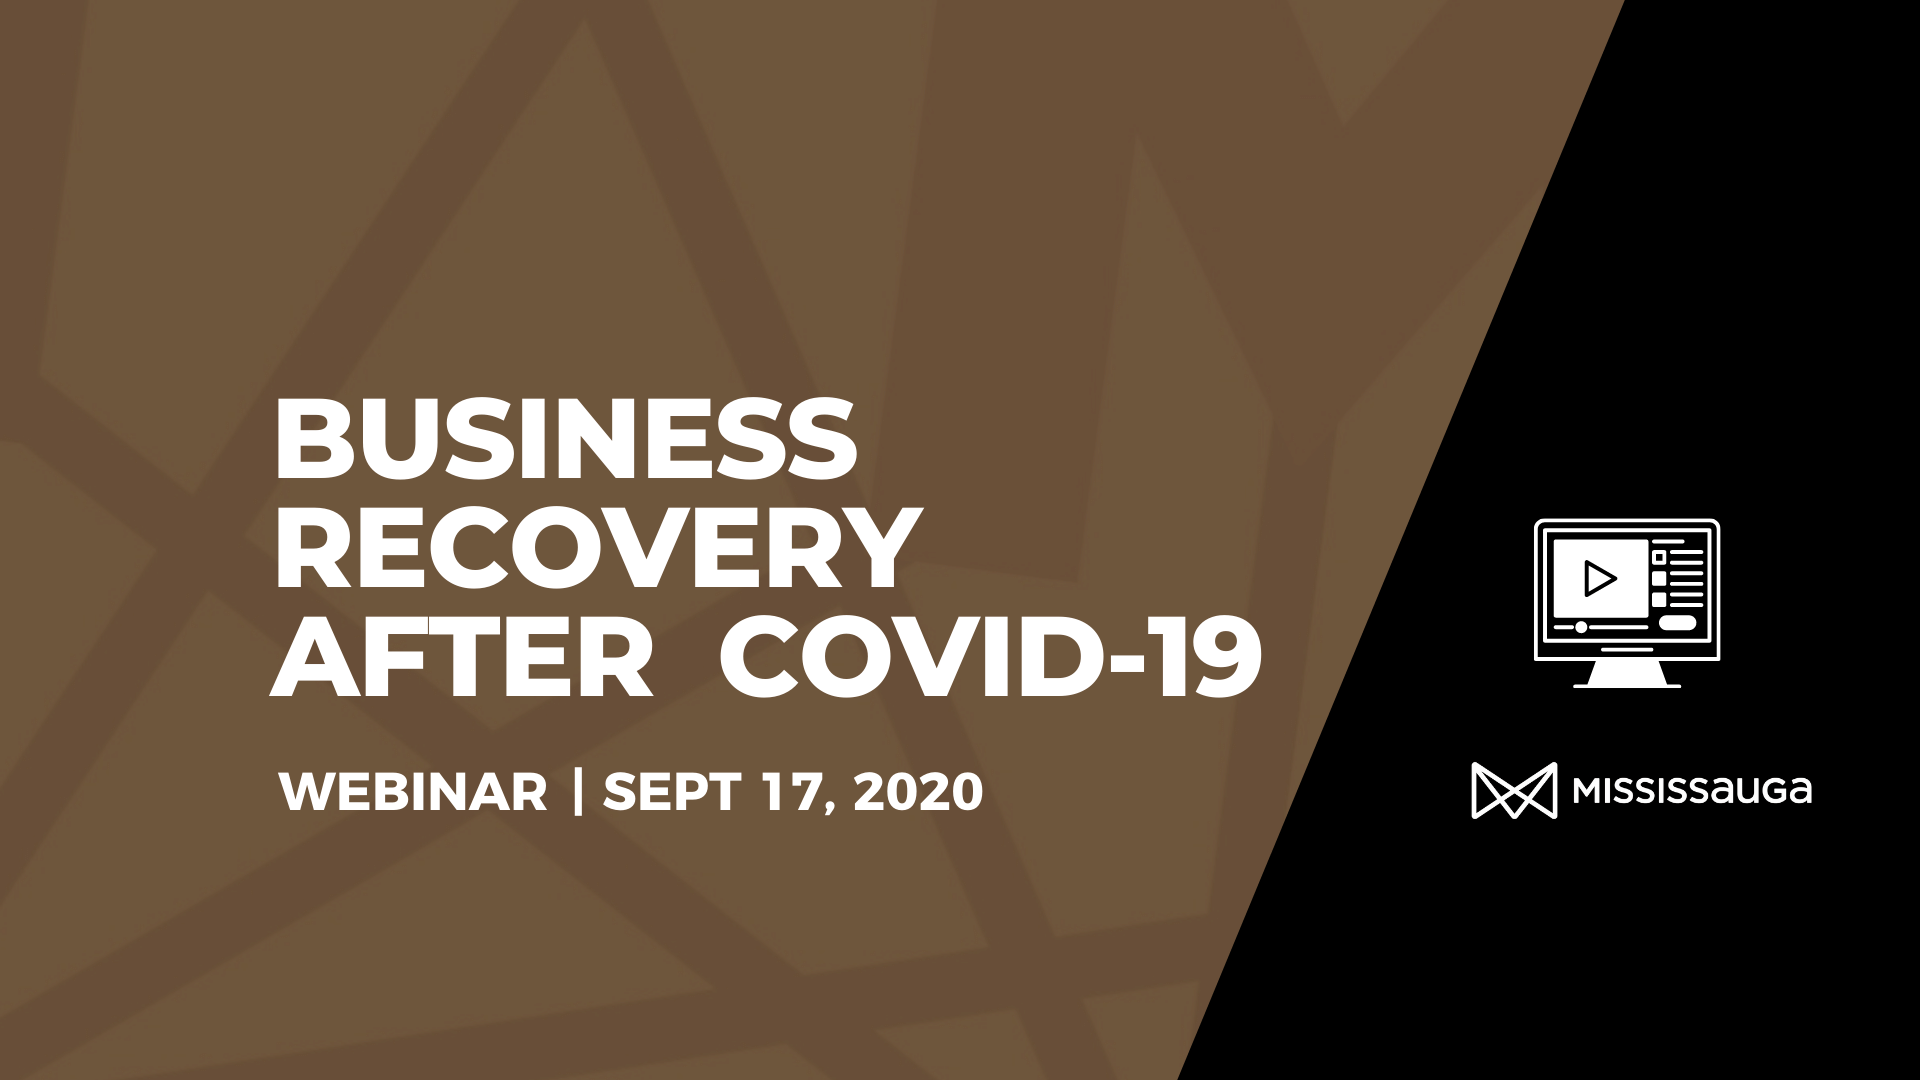 Business Recovery after COVD-19 – Webinar, Sept 17